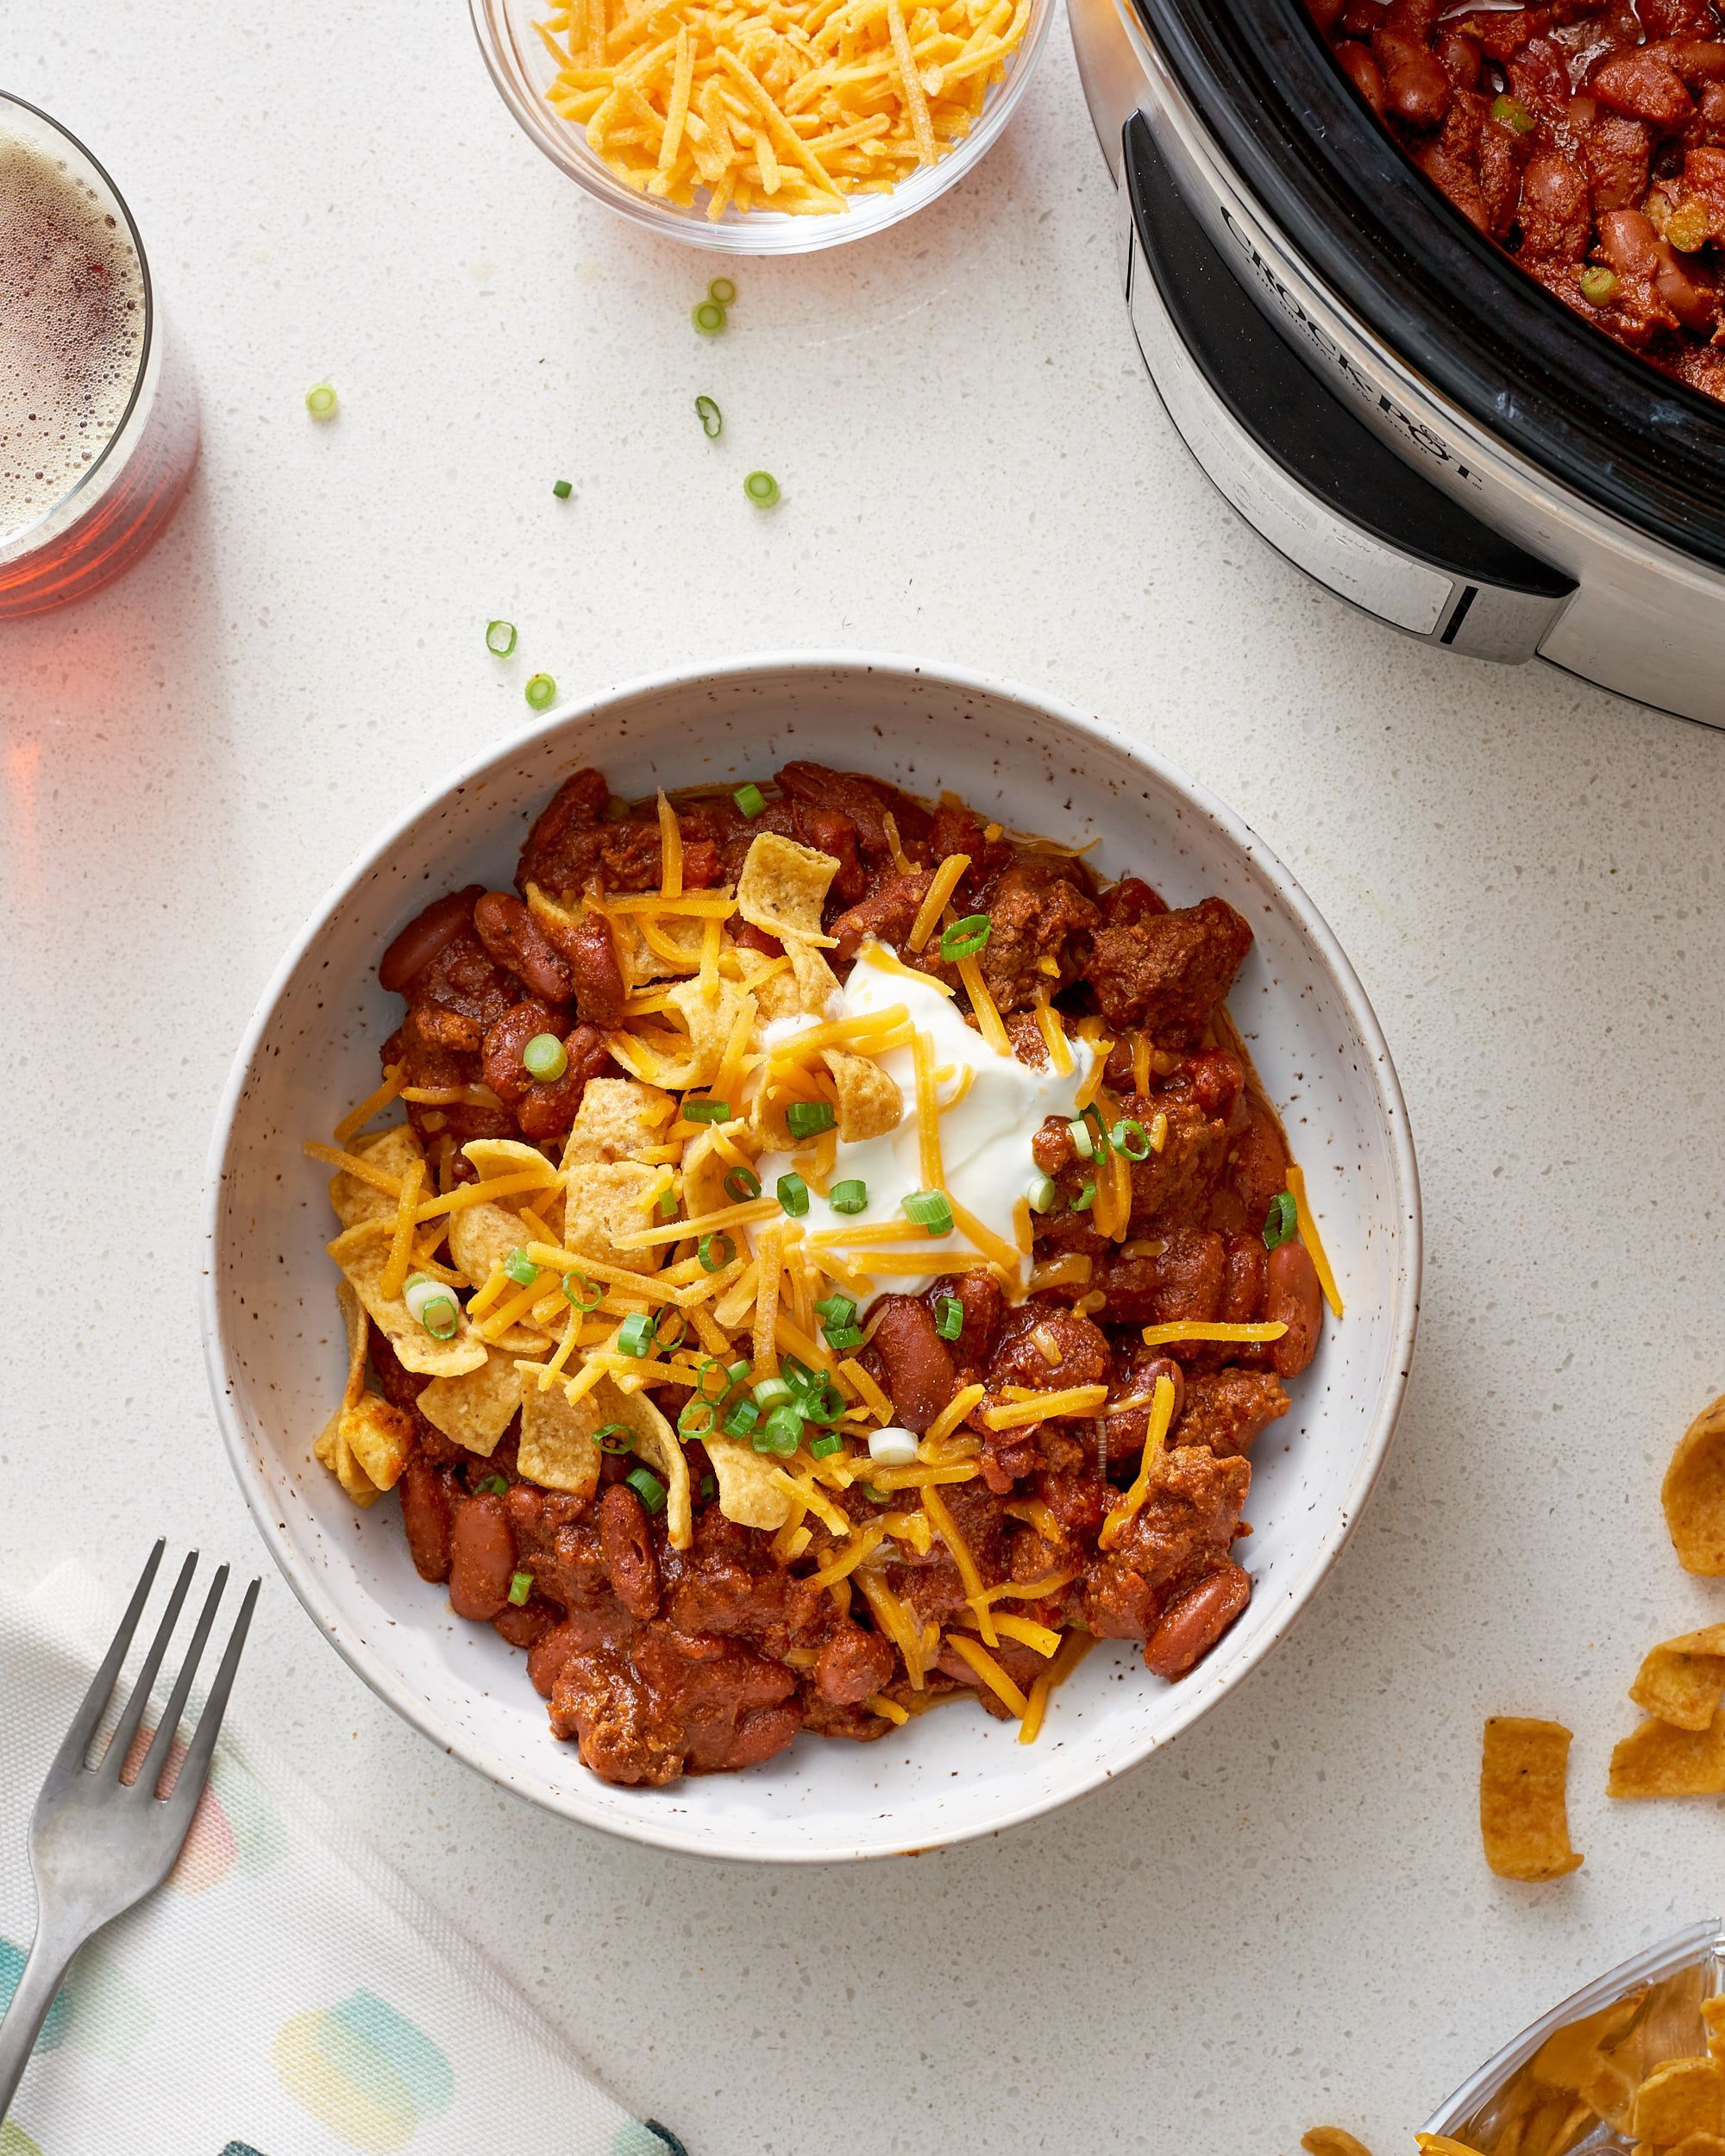 40 Fall Slow Cooker Recipes: 10 Fall Classics To Make In The Slow Cooker (With Images